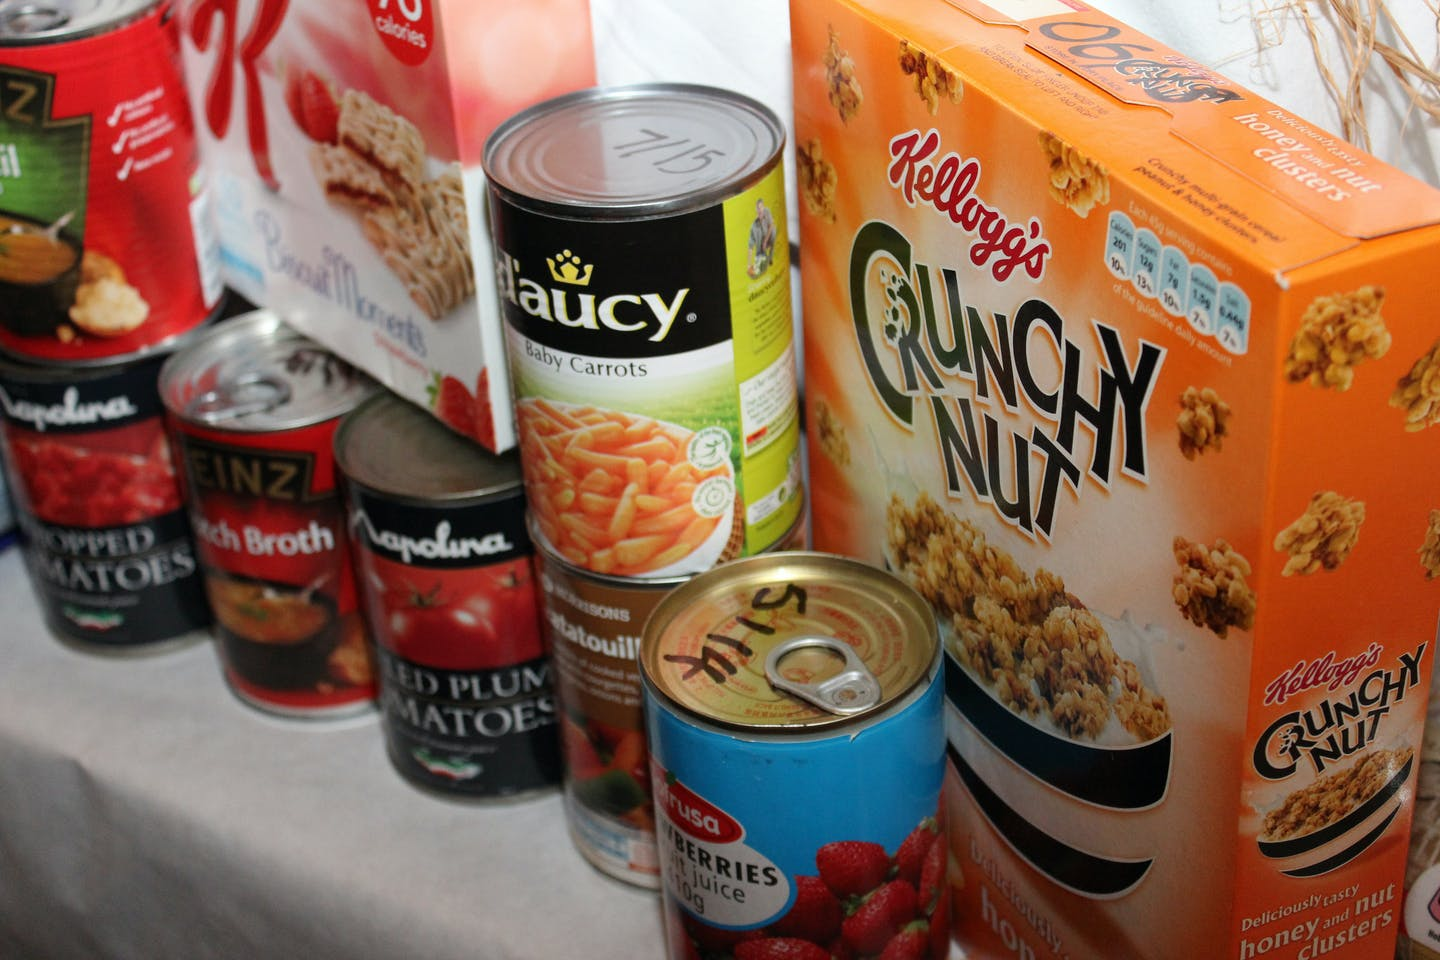 Foods at the food bank